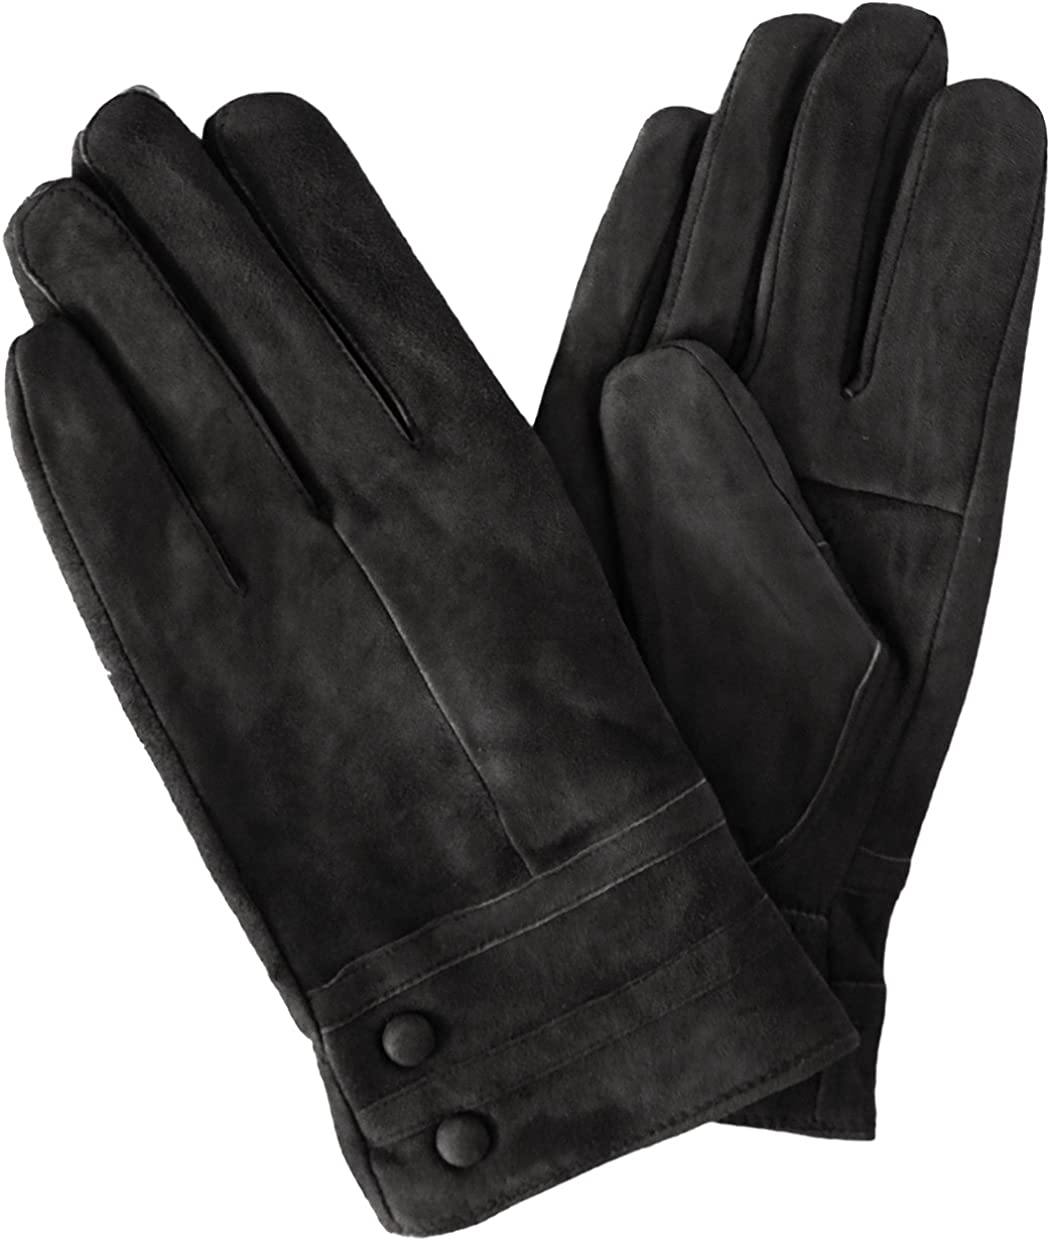 KMystic Classic Suede Leather Winter Gloves